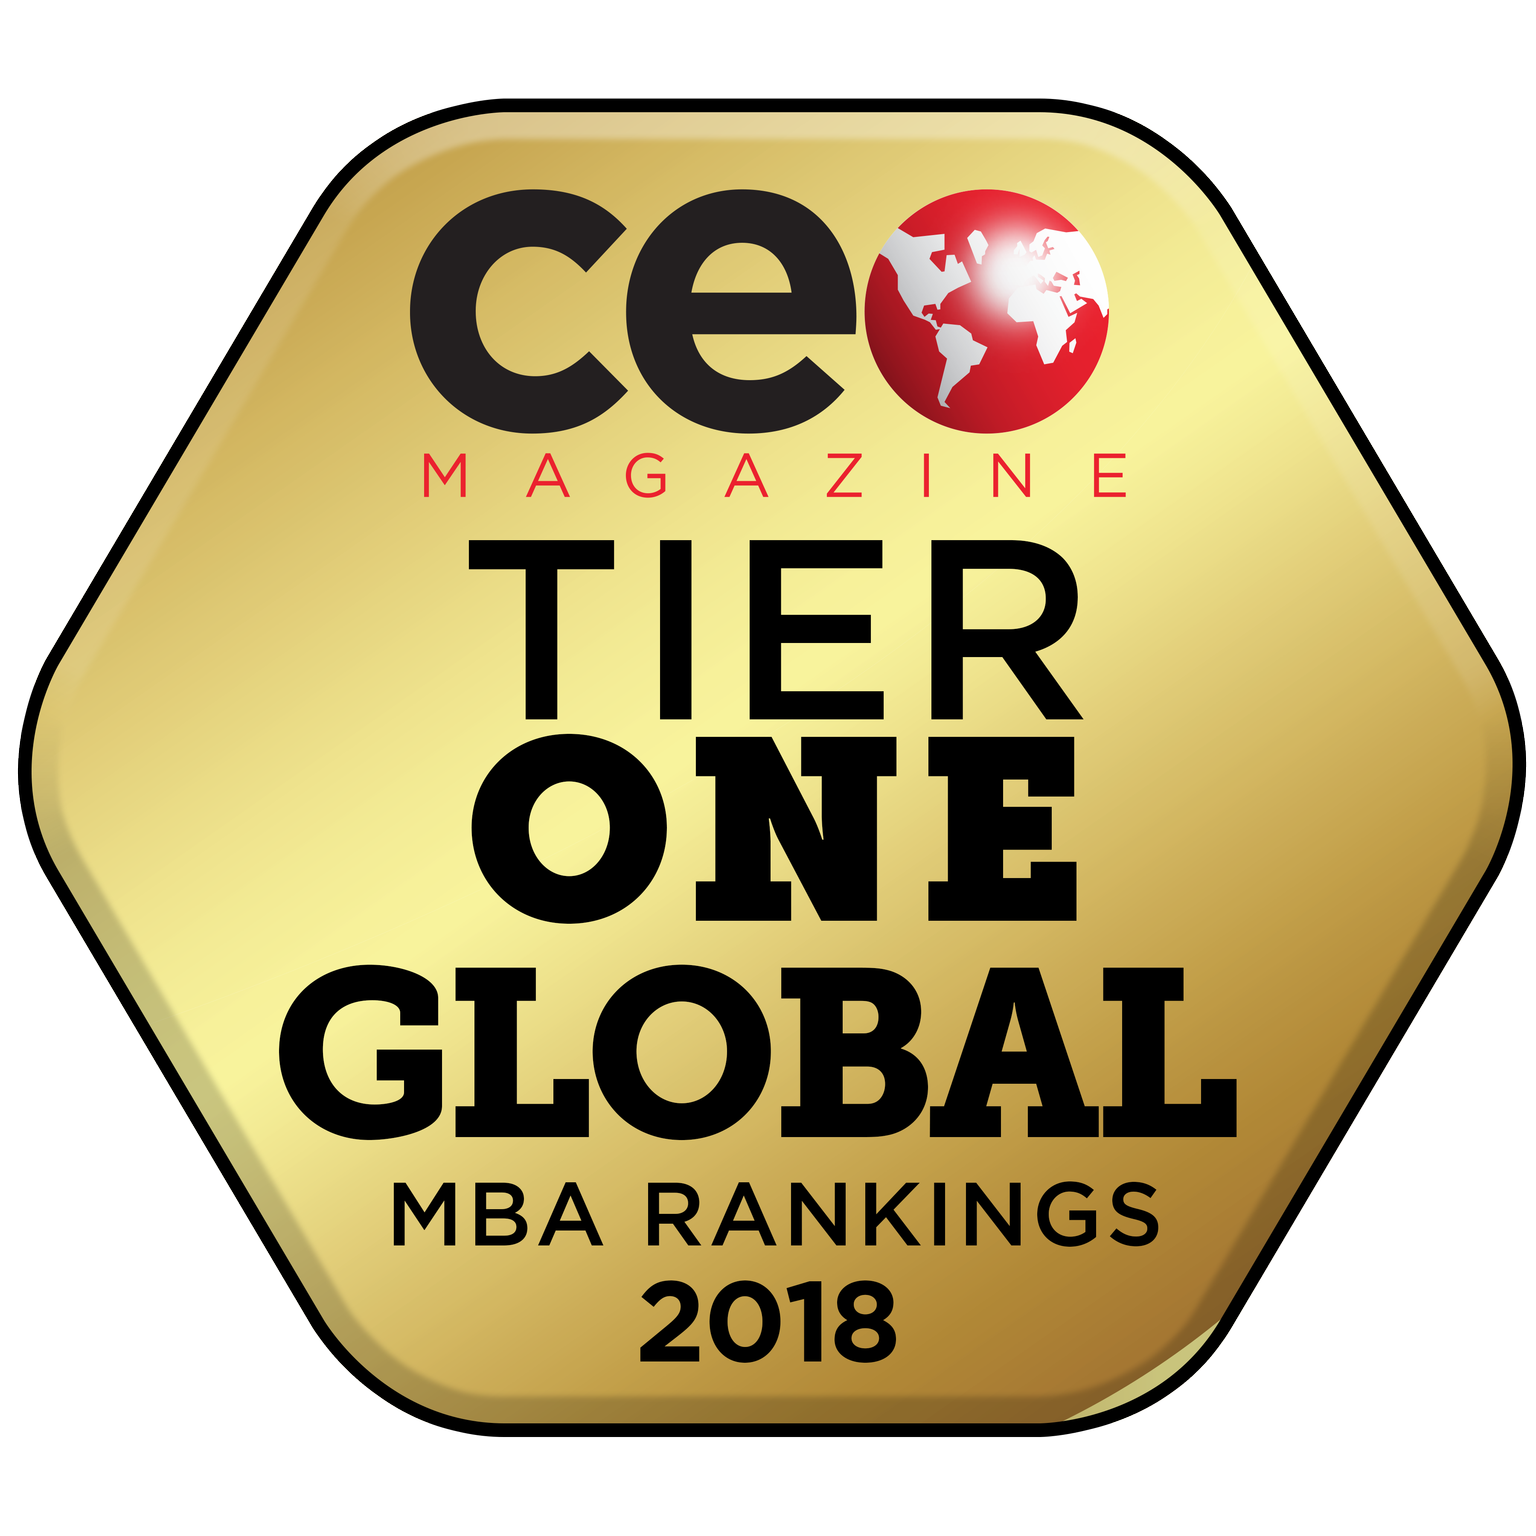 Global_MBArankings_2018tieroneglobal